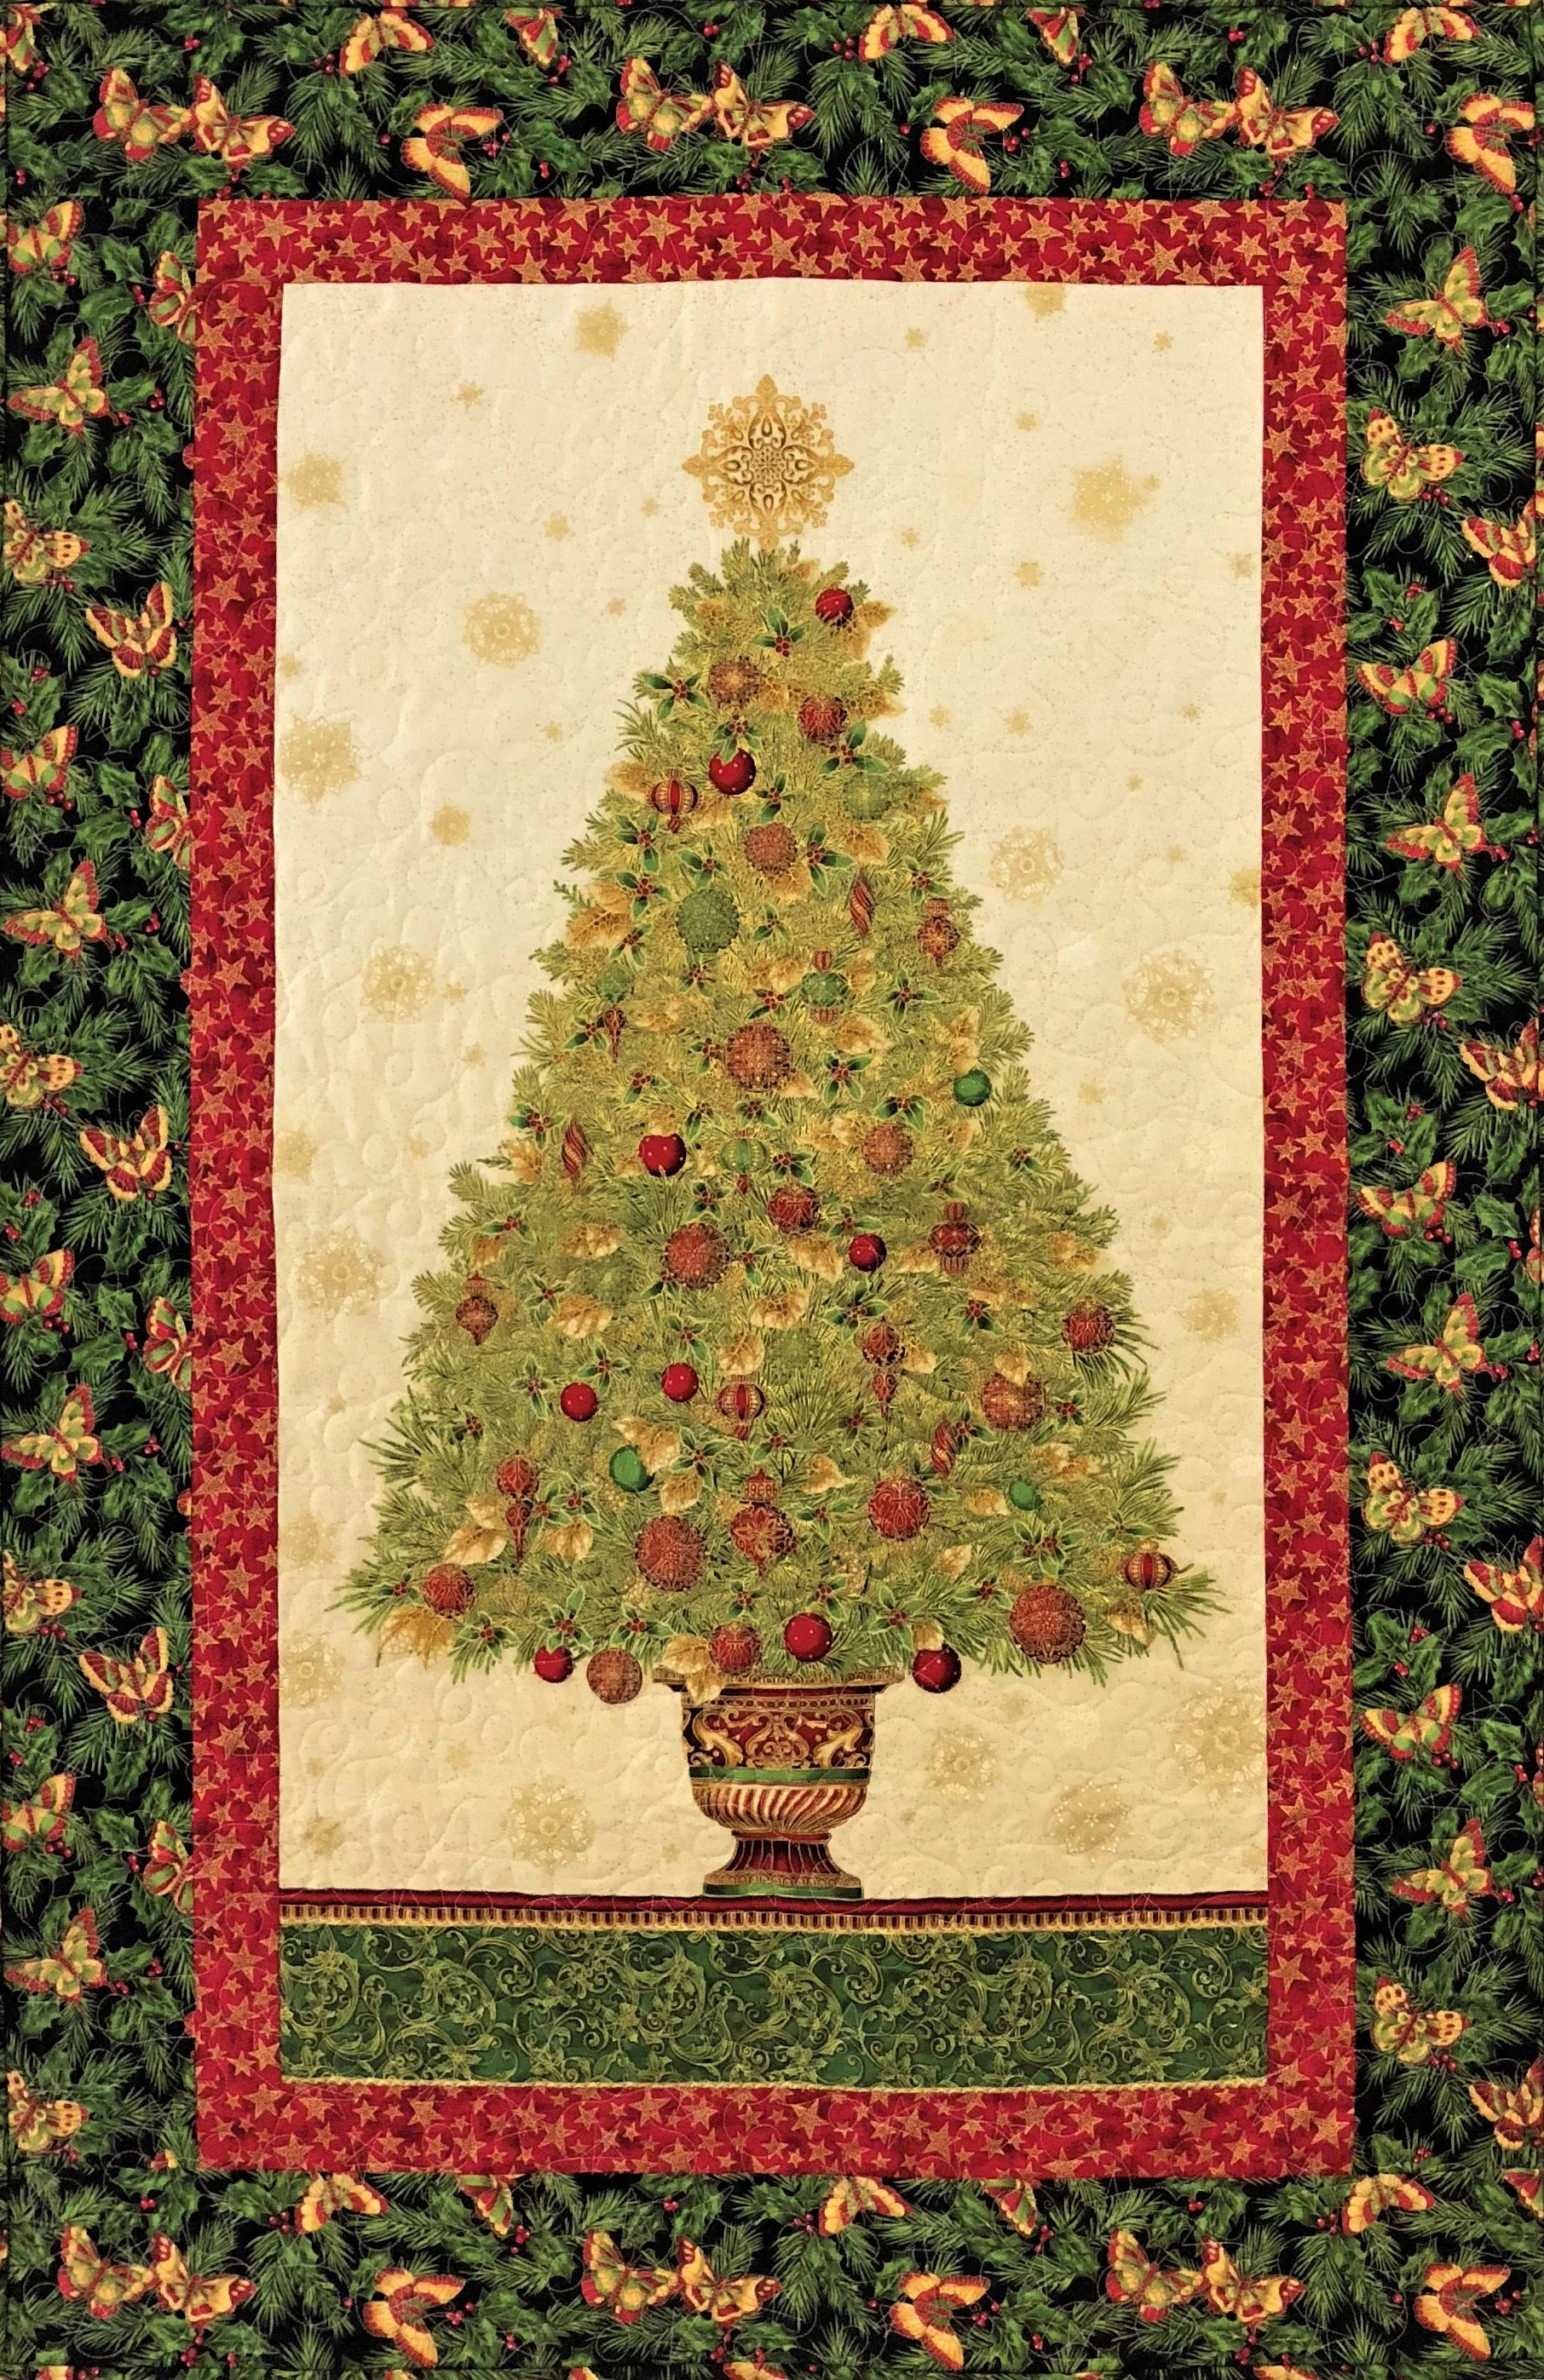 Pinterest Christmas Quilted Wall Hangings Christmas Tree With Butterflies Quilted Wall Hanging